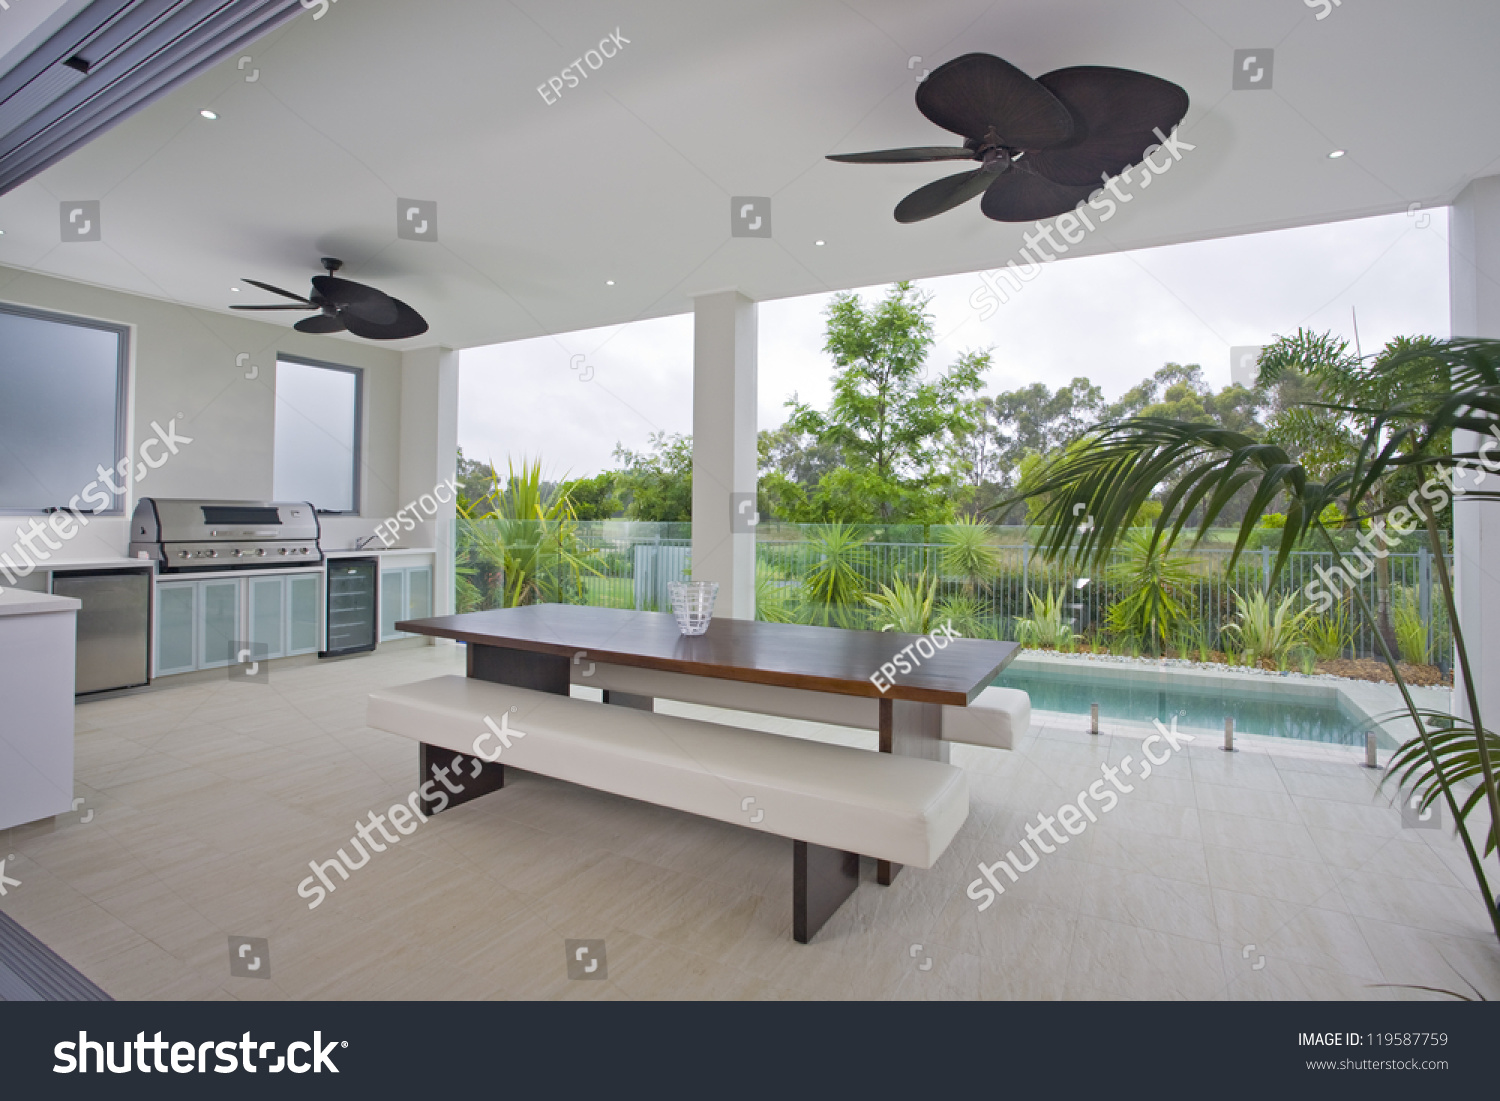 Outdoor entertaining area with swimming pool photo libre de droits 119587759 shutterstock for Swimming pool entertaining areas